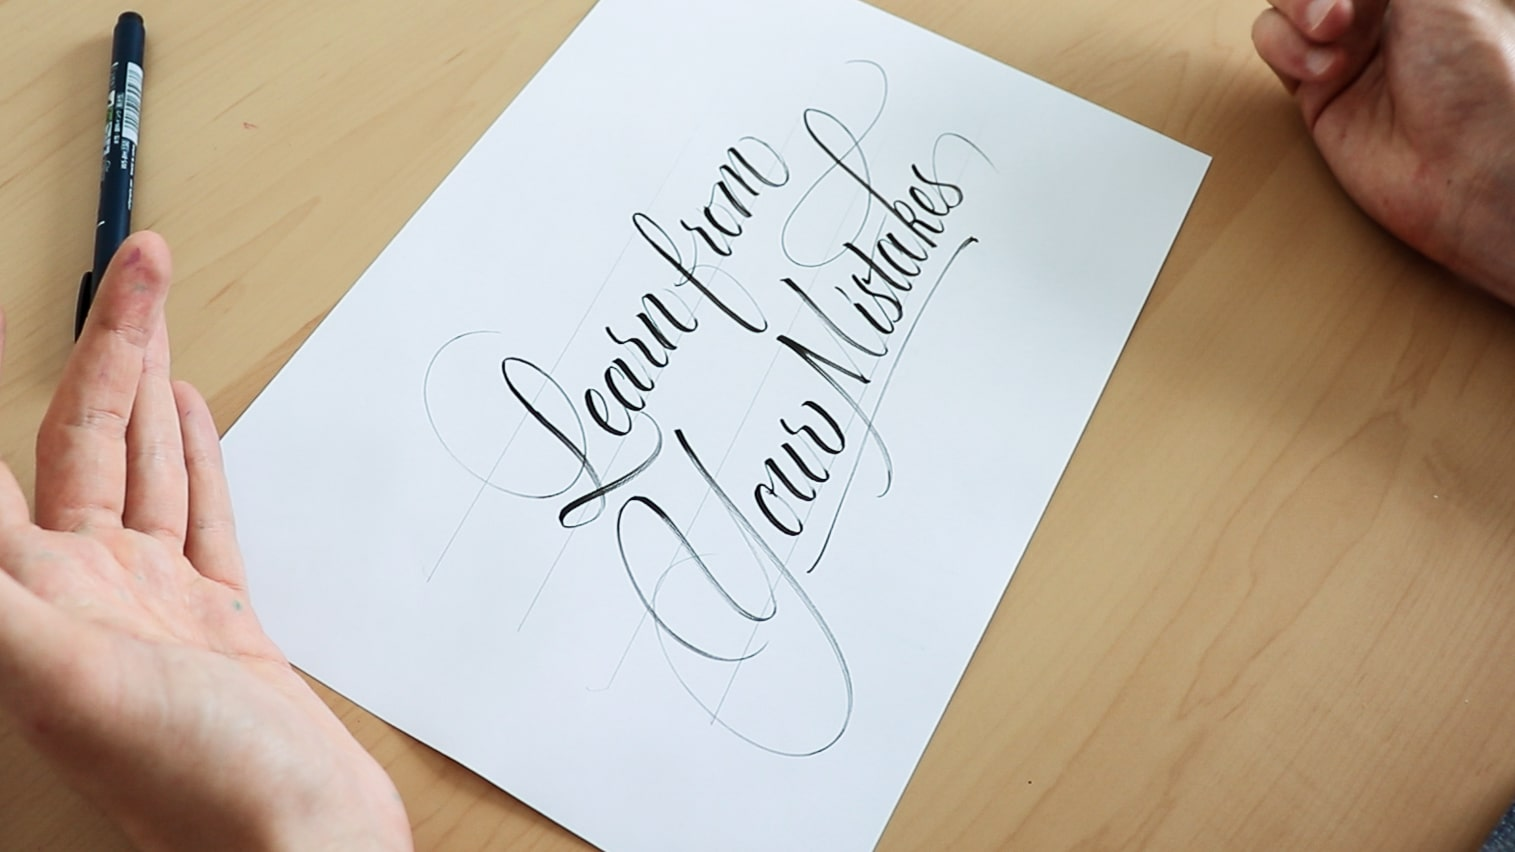 Brush lettering without prior sketching